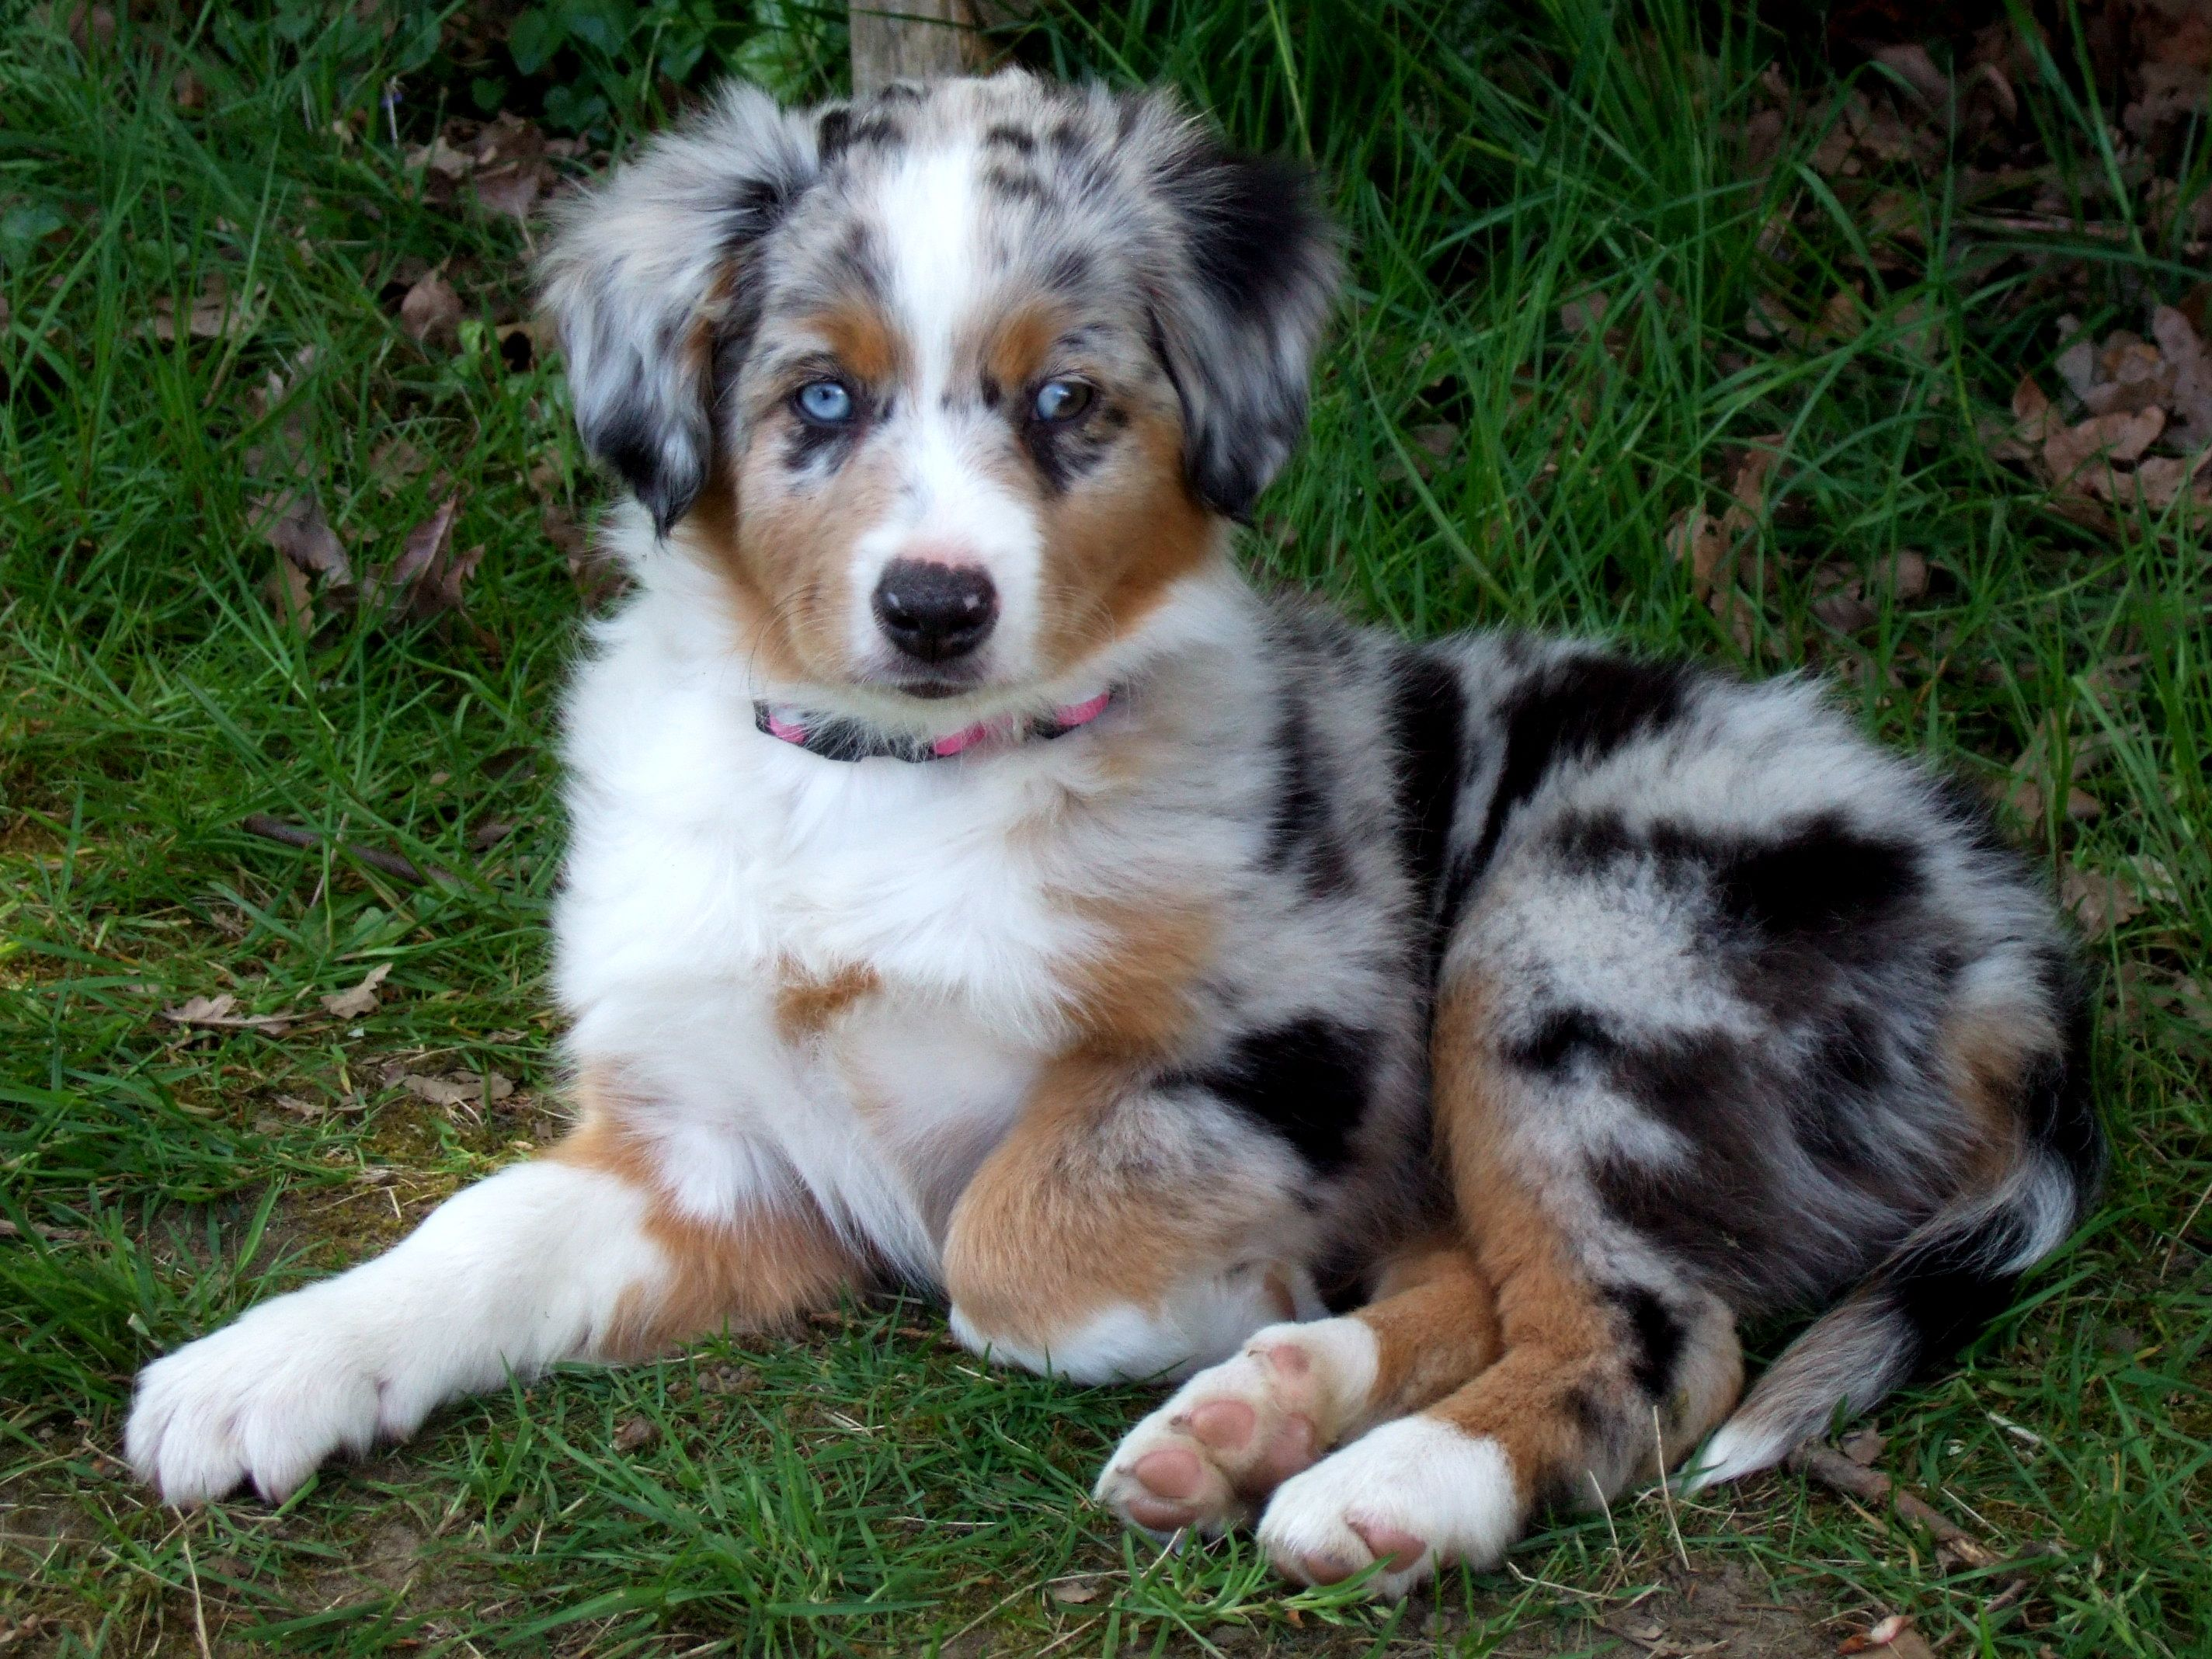 Aussie Just Like Brodie Aussie Puppies Miniature Australian Shepherd Australian Shepherd Puppies